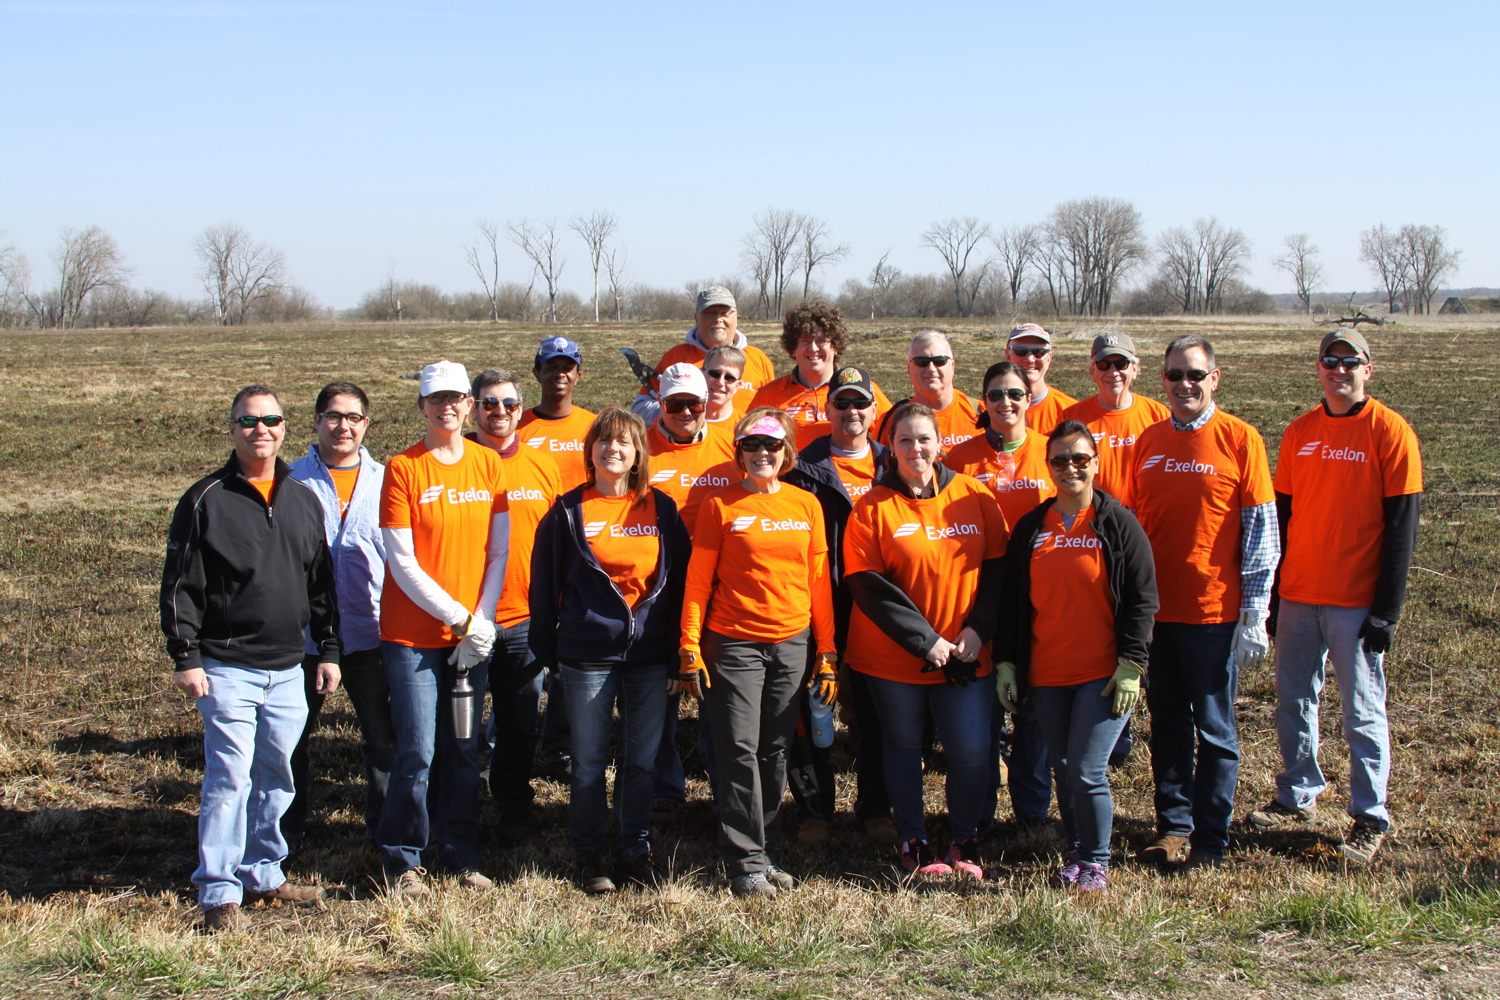 Twenty volunteers from Exelon participated in a TWI volunteer day at Midewin National Tallgrass Prairie to clear invasive brush from a prairie and wetland restoration area for National Volunteer Week.